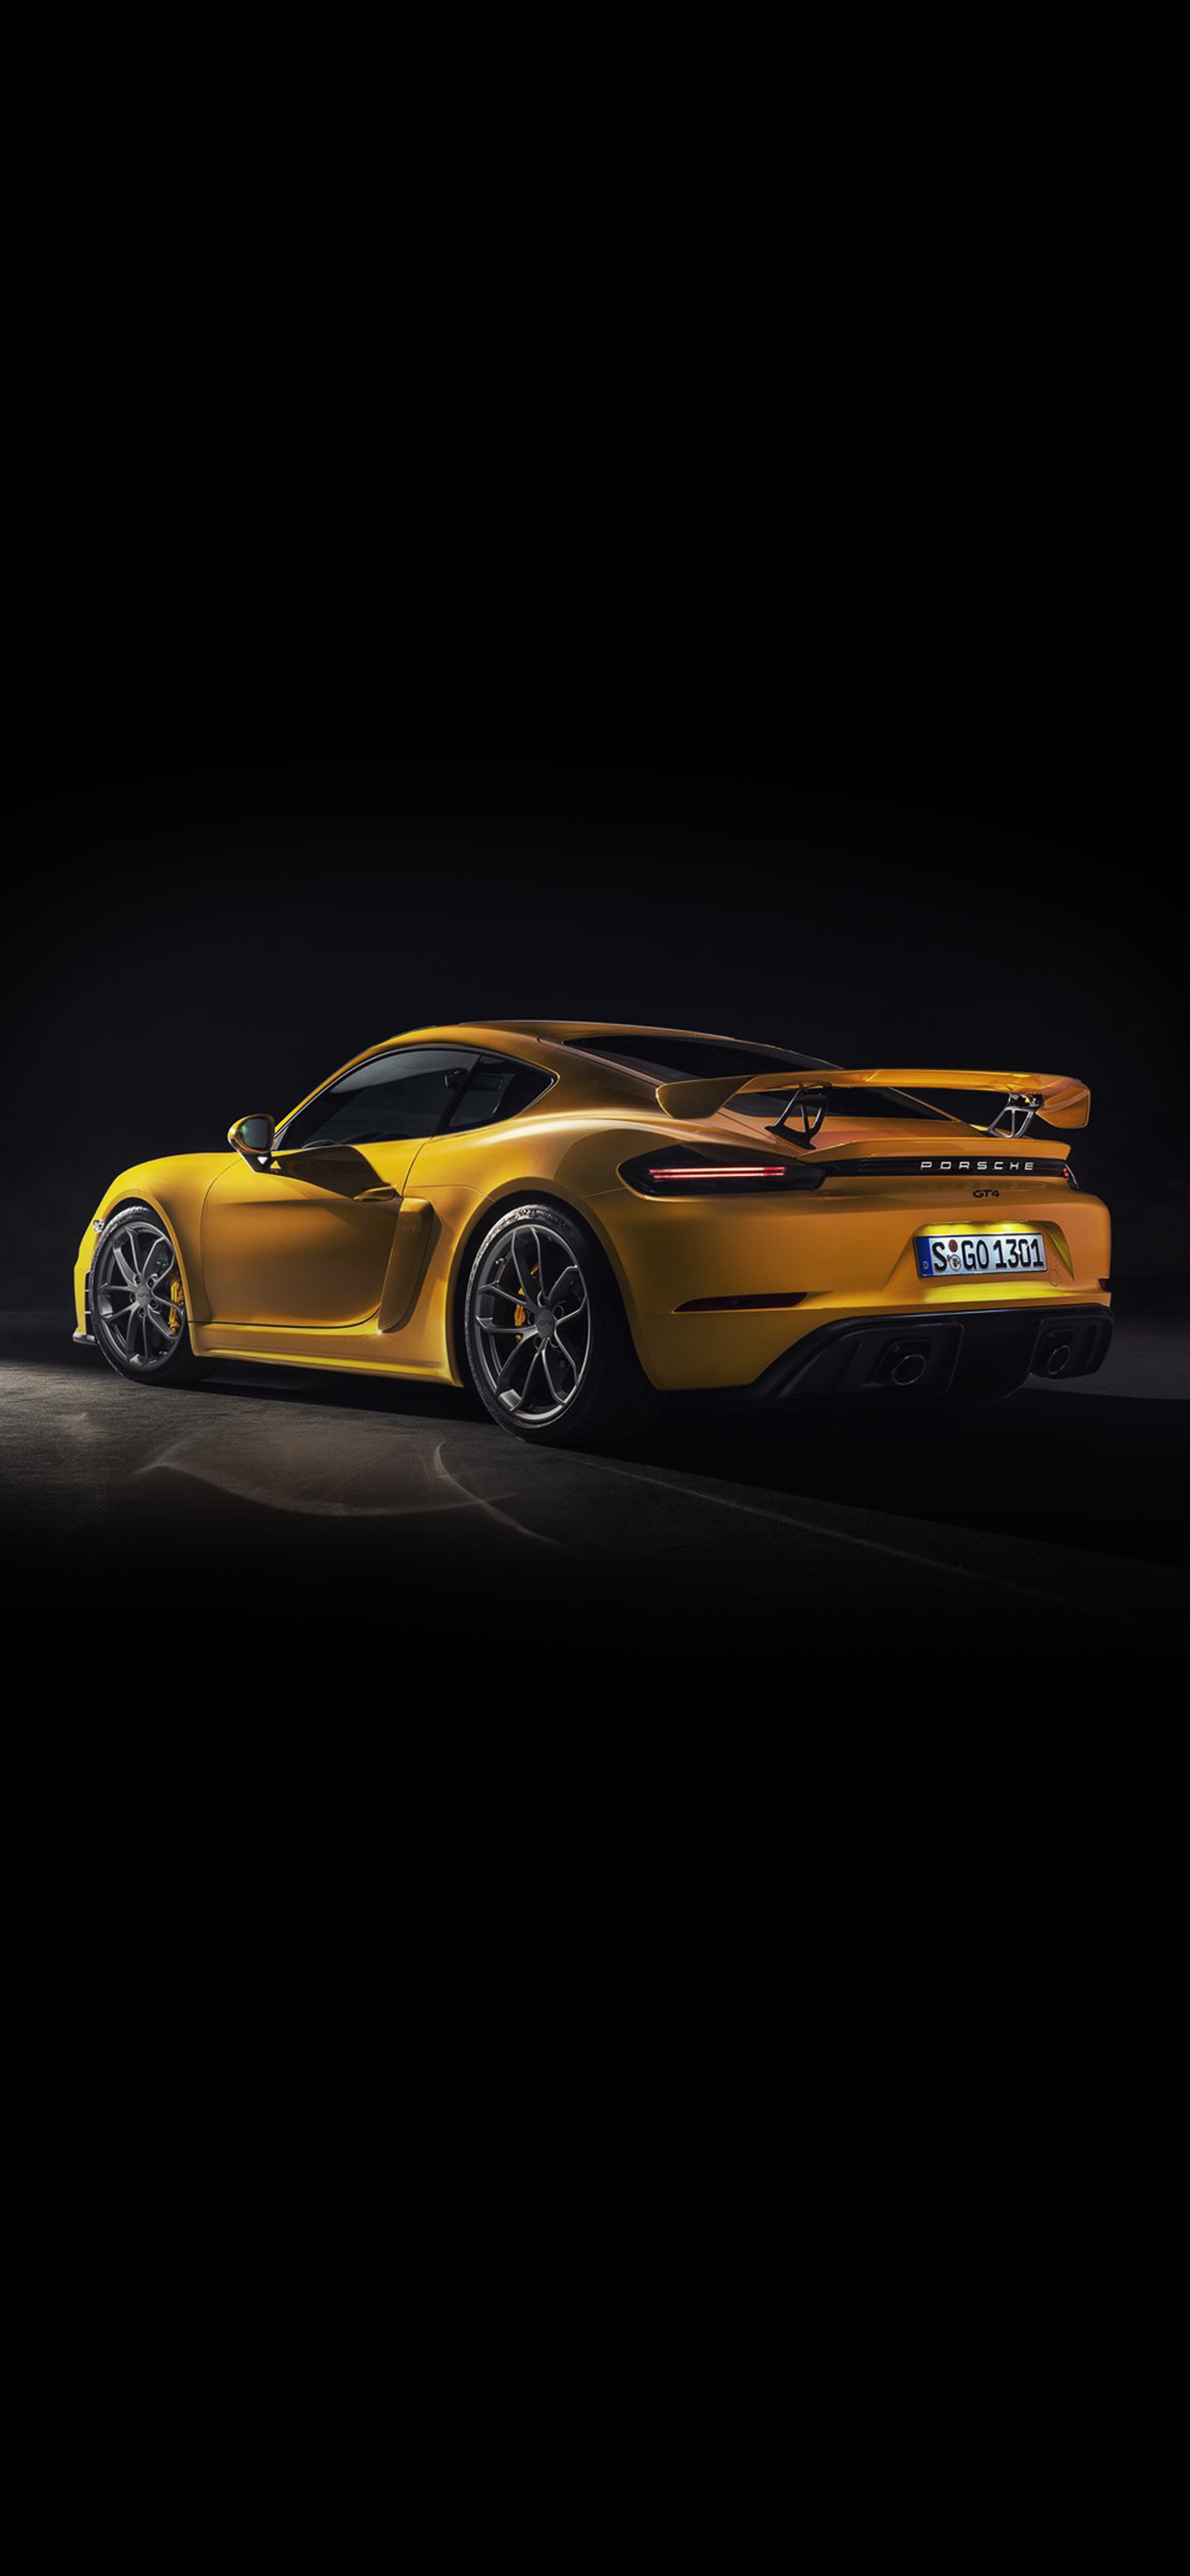 Porsche Phone Wallpapers Top Free Porsche Phone